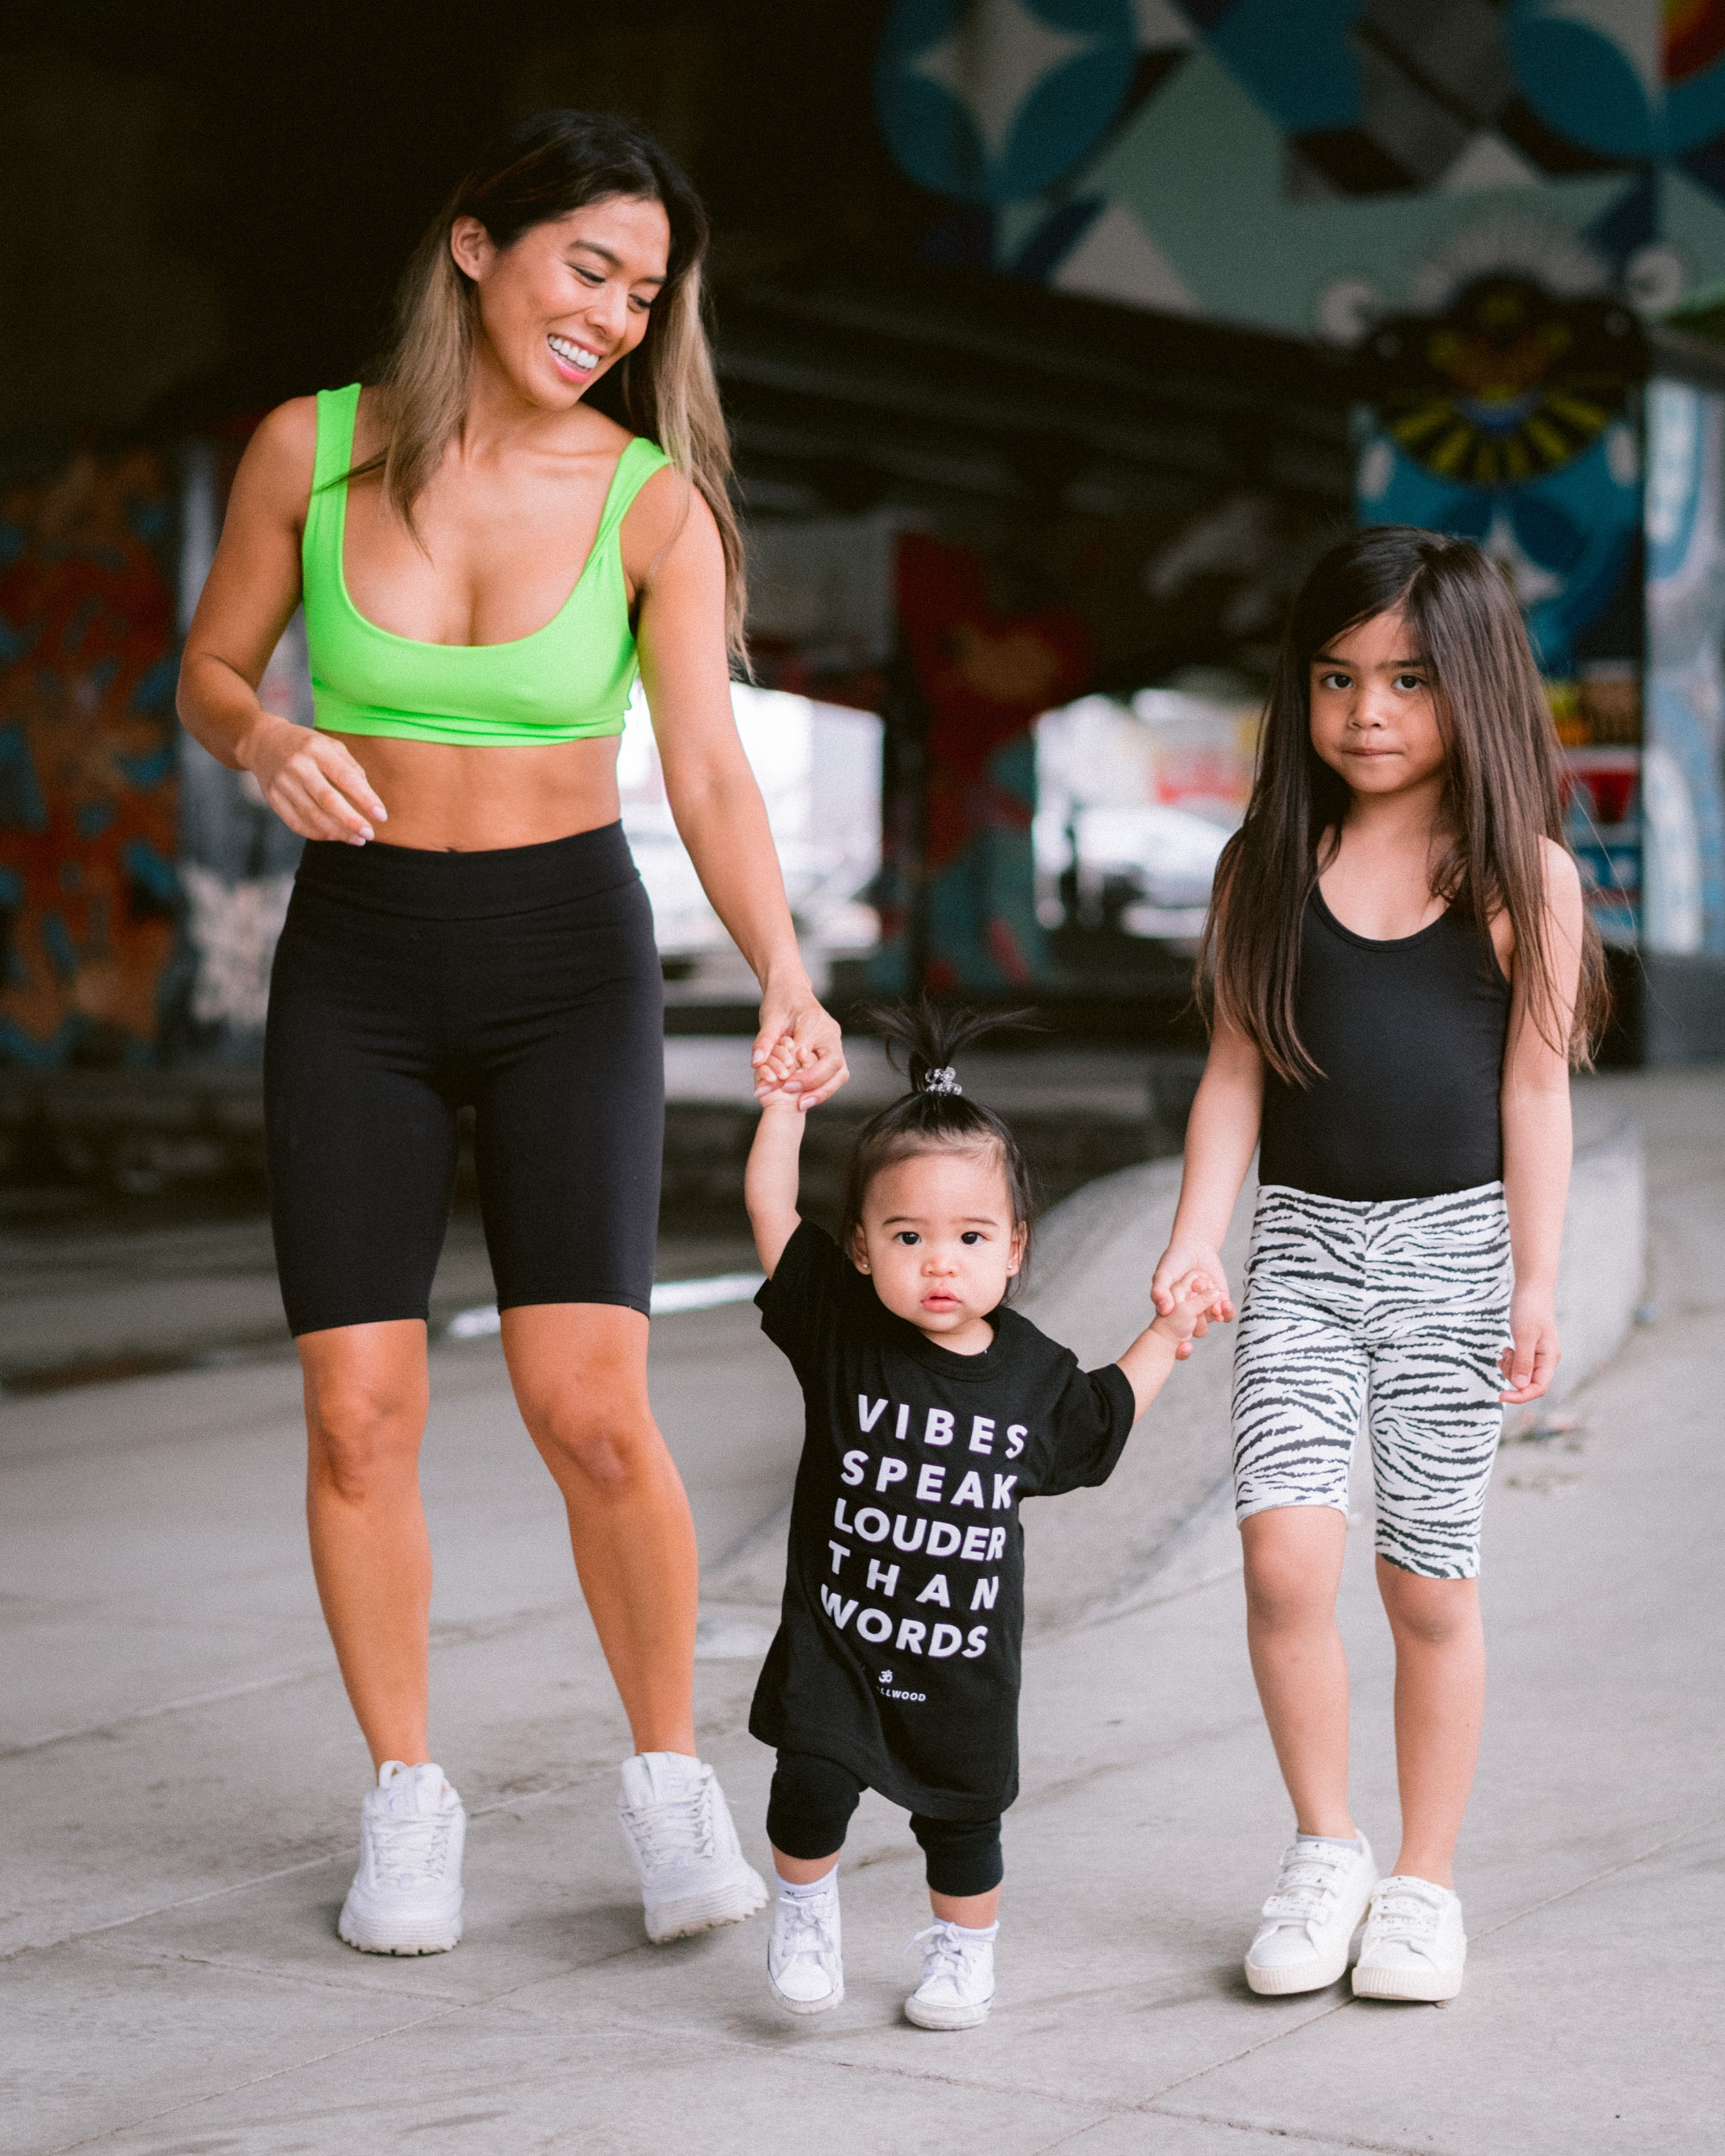 Start the No Tummy Mommy Kick-Start Program Today! - Your complete fitness and nutrition guide to becoming your healthiest and happiest self!